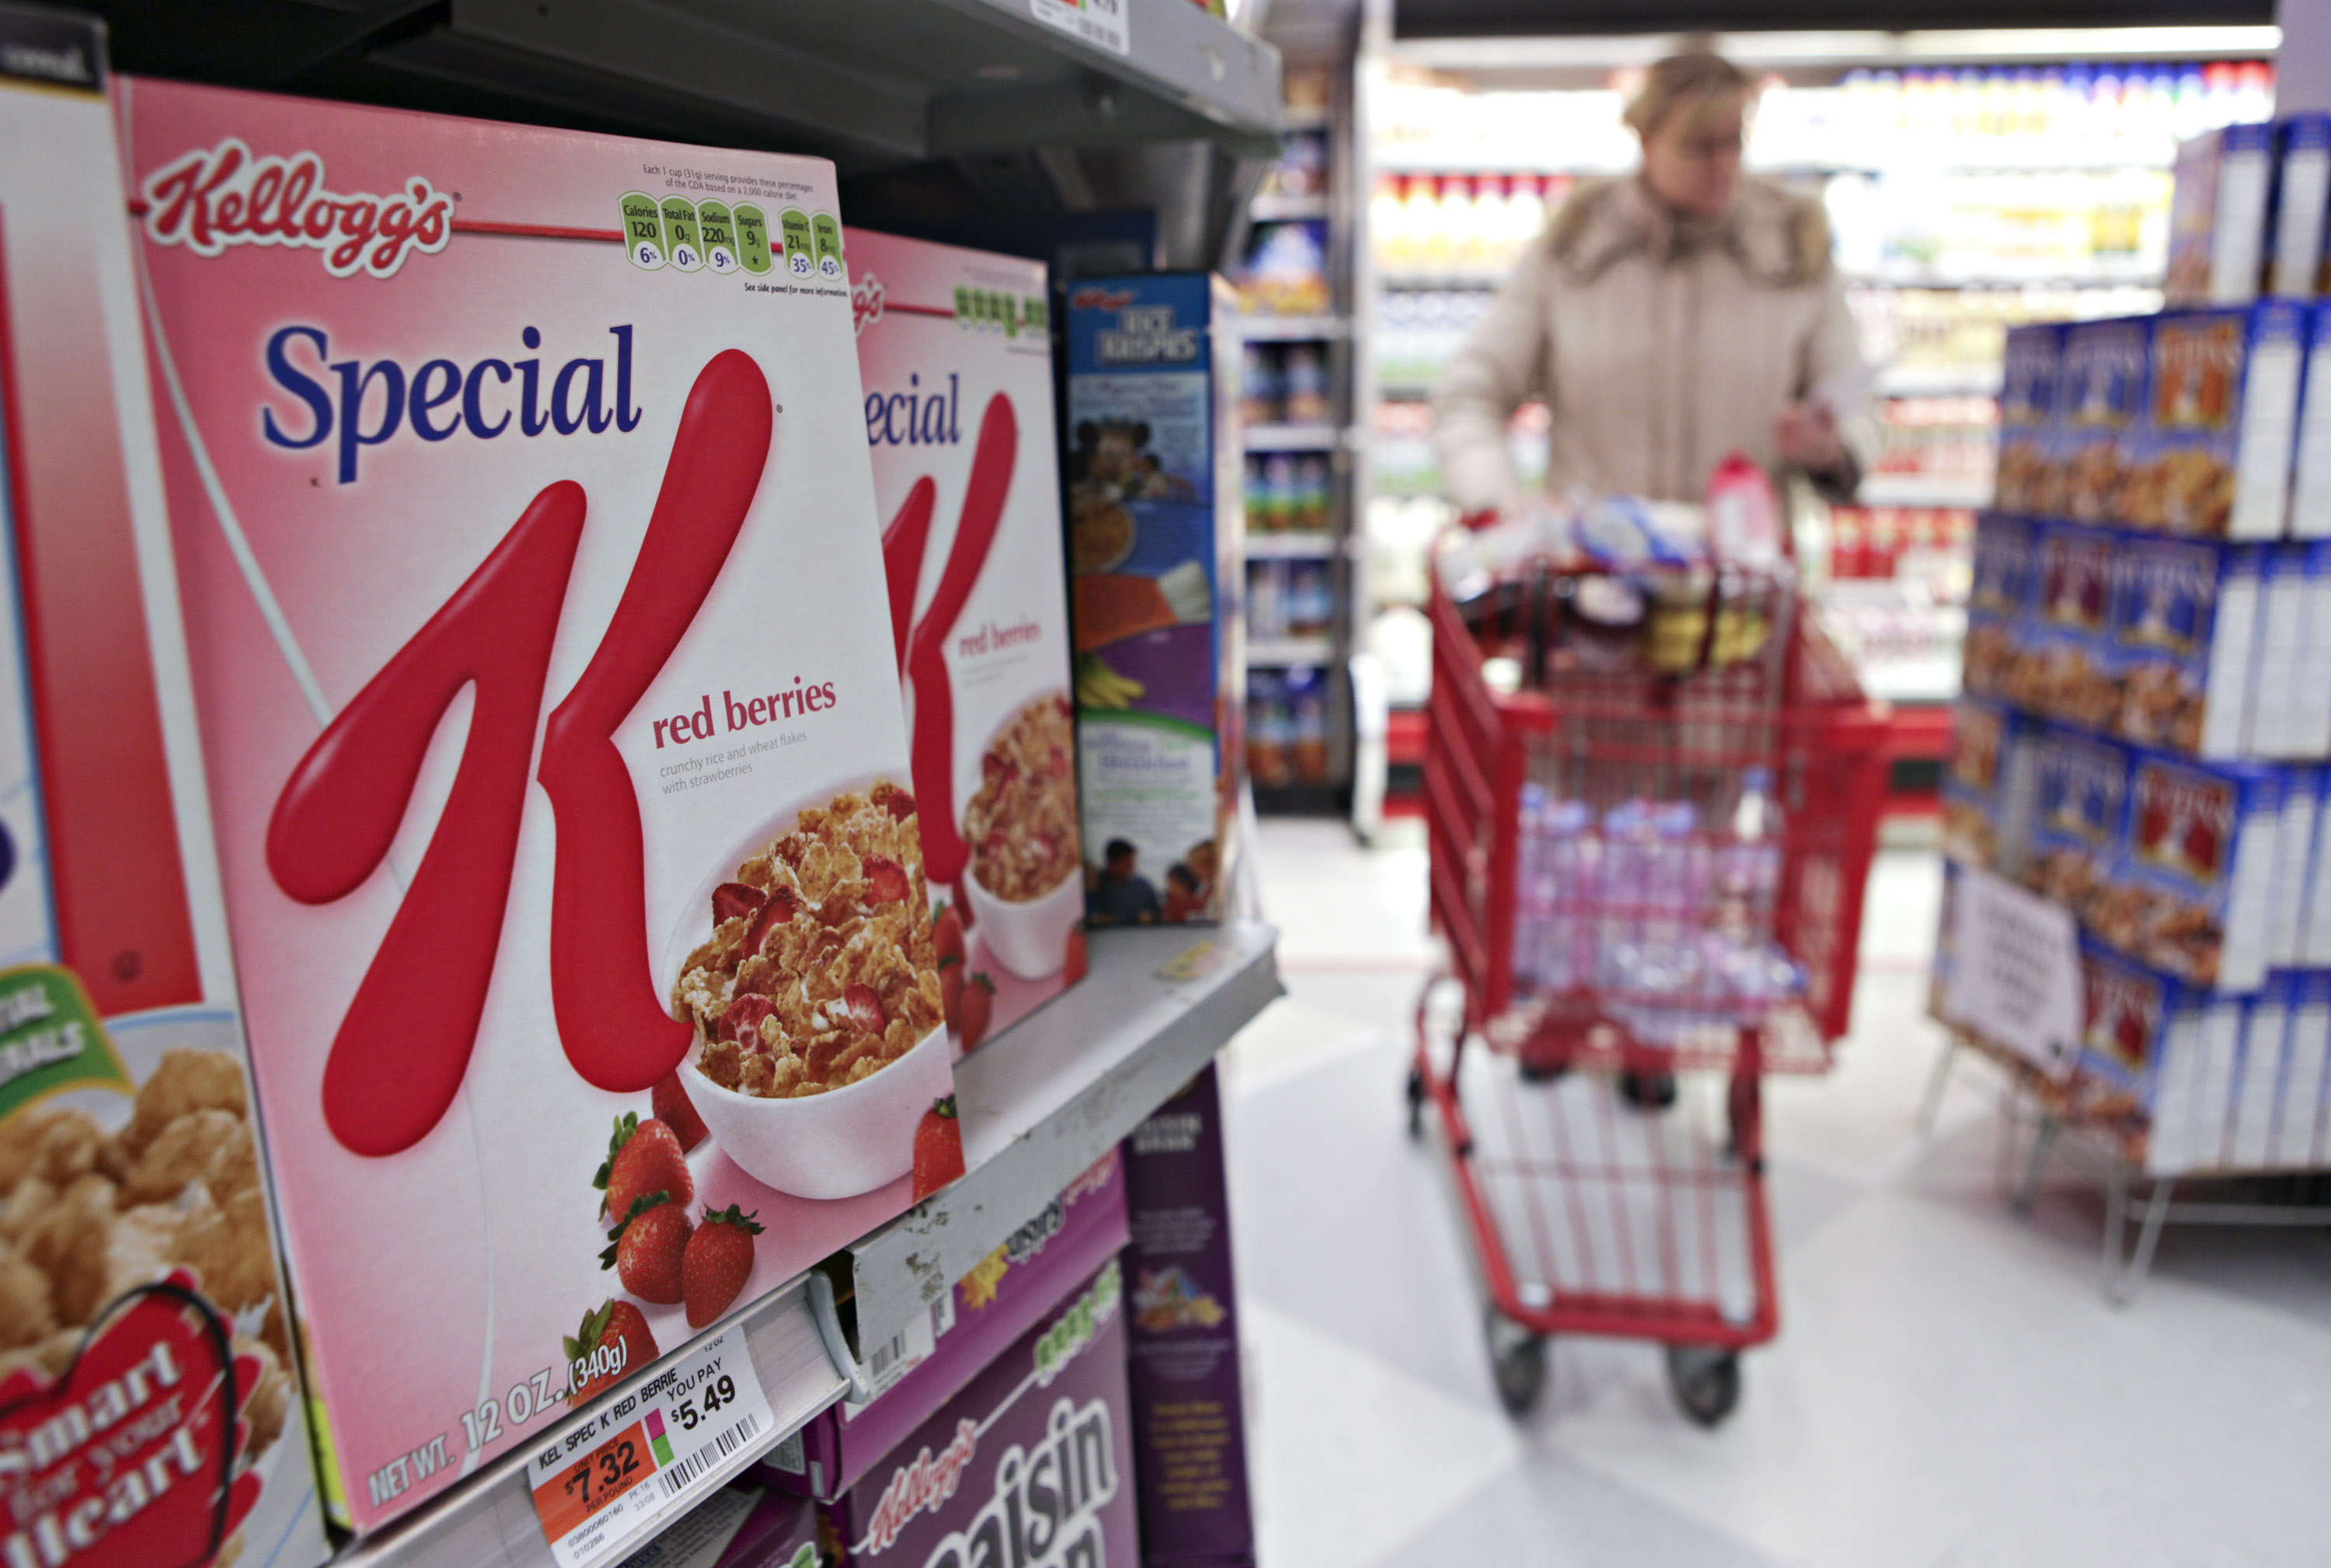 Kellogg's cereal products sit on display in a supermarket in